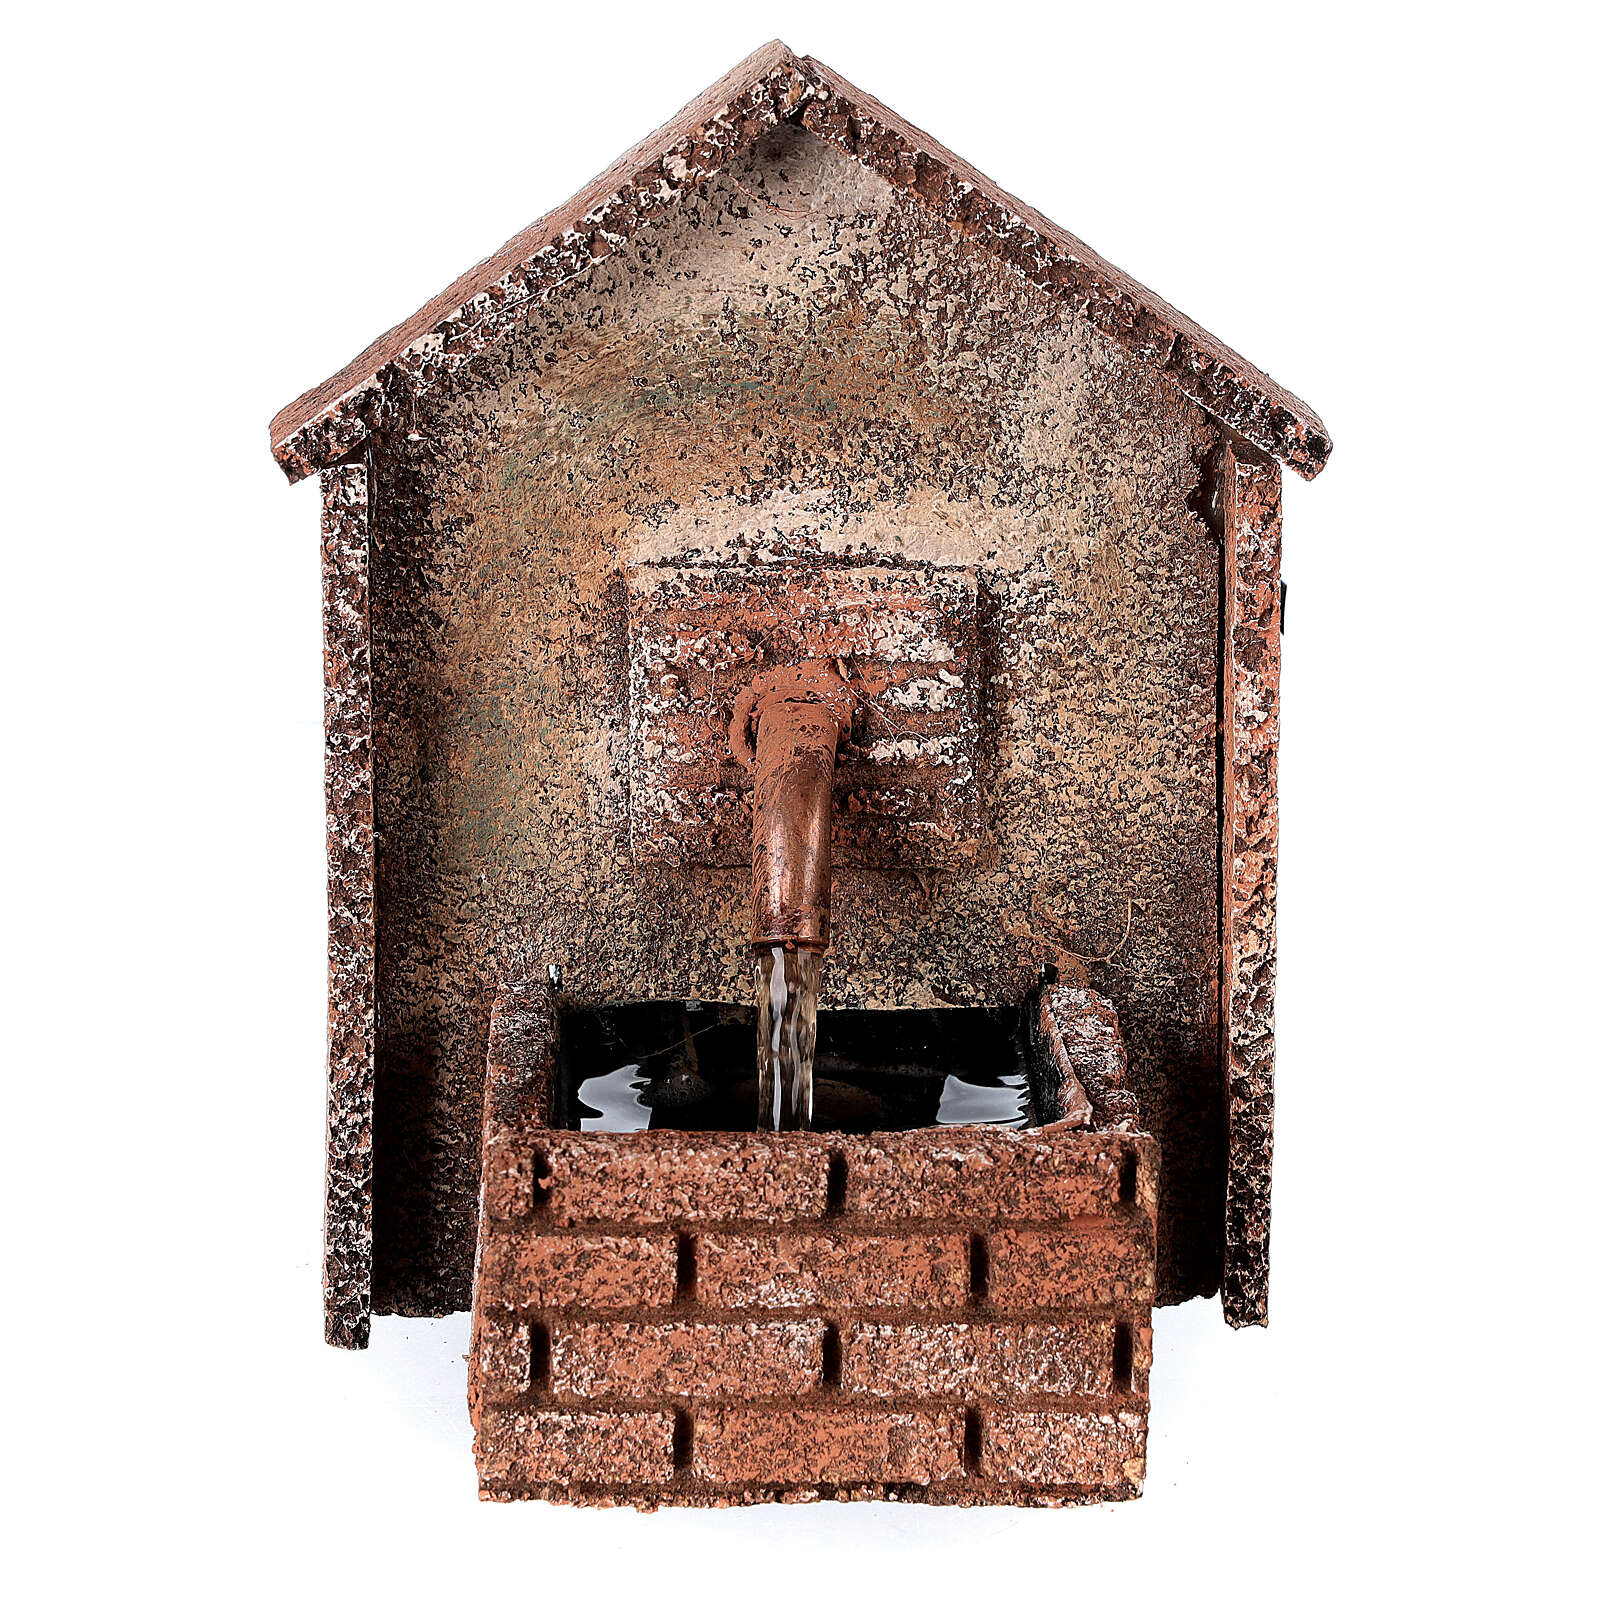 Electric fountain with pitched shed 14x10x10 cm for Neapolitan Nativity Scene with 8-10 cm figurines 4